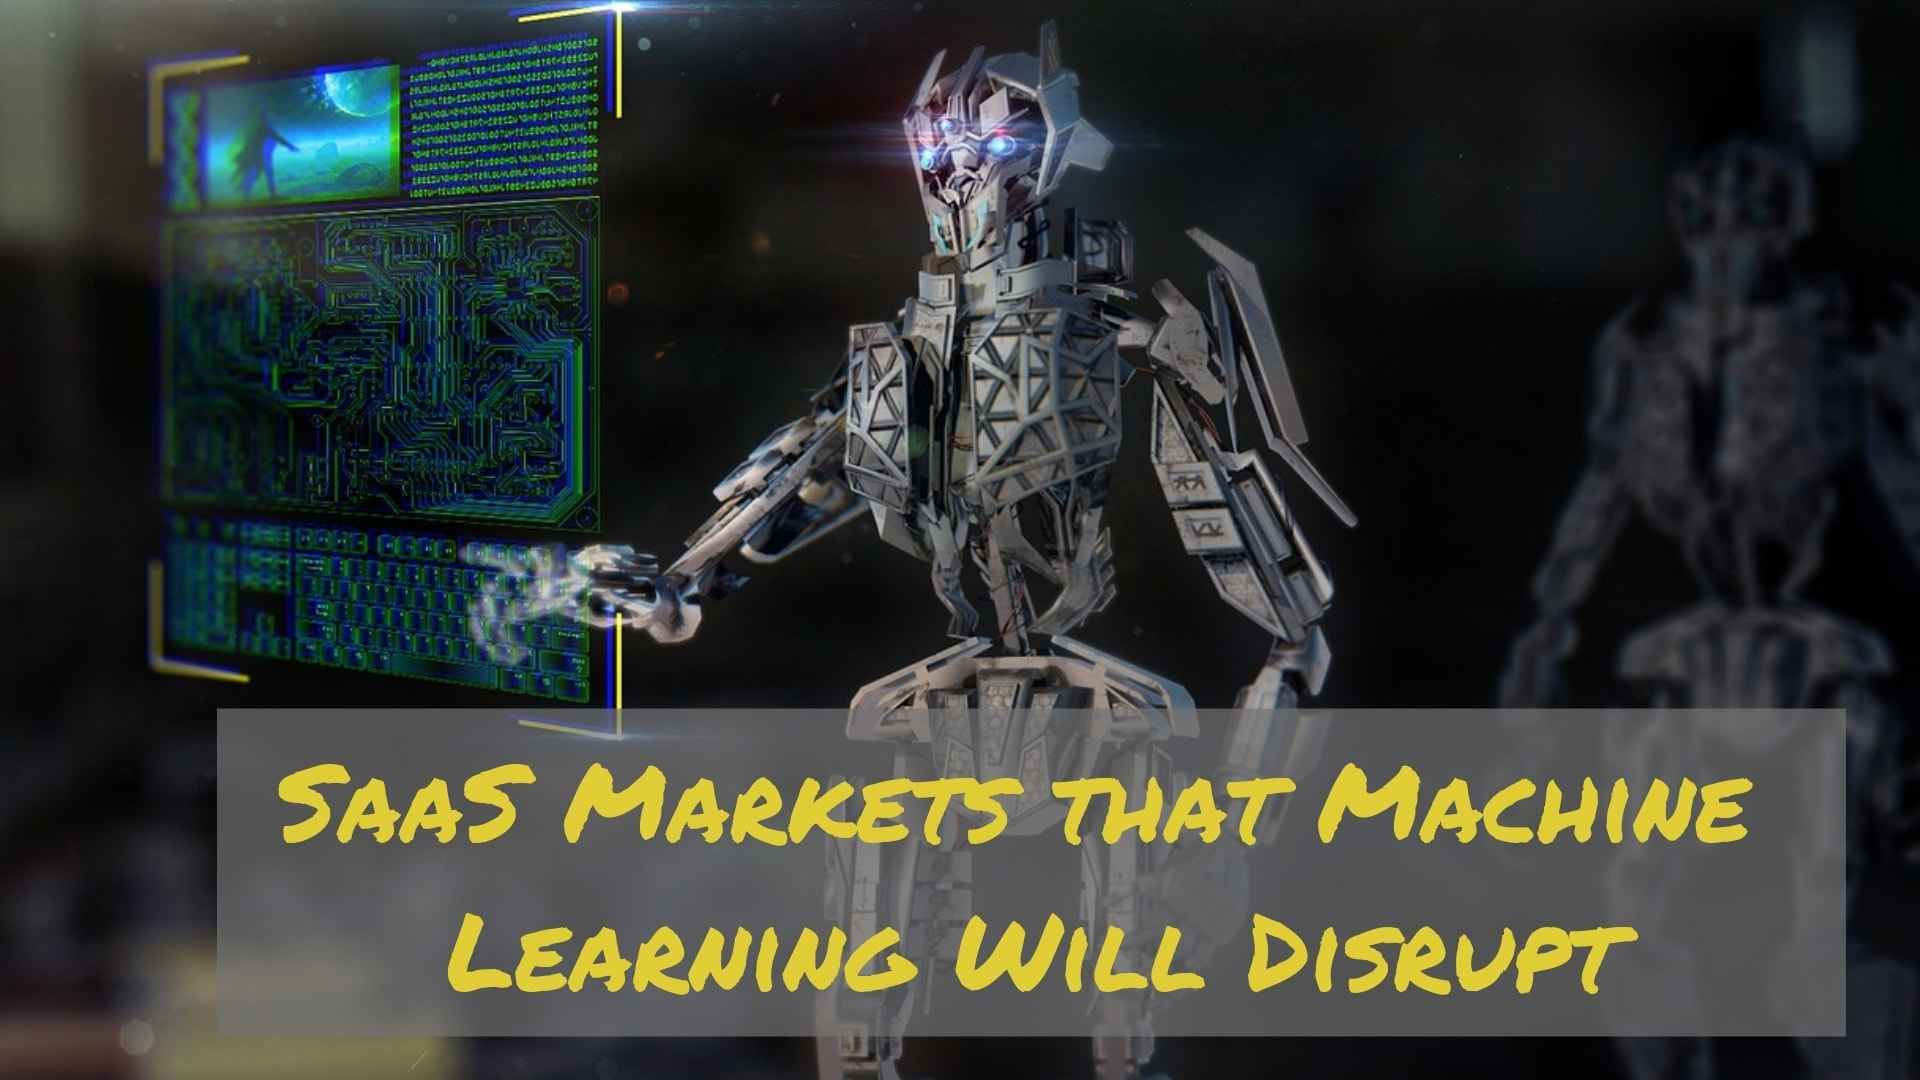 SaaS Markets that Machine Learning Will Disrupt